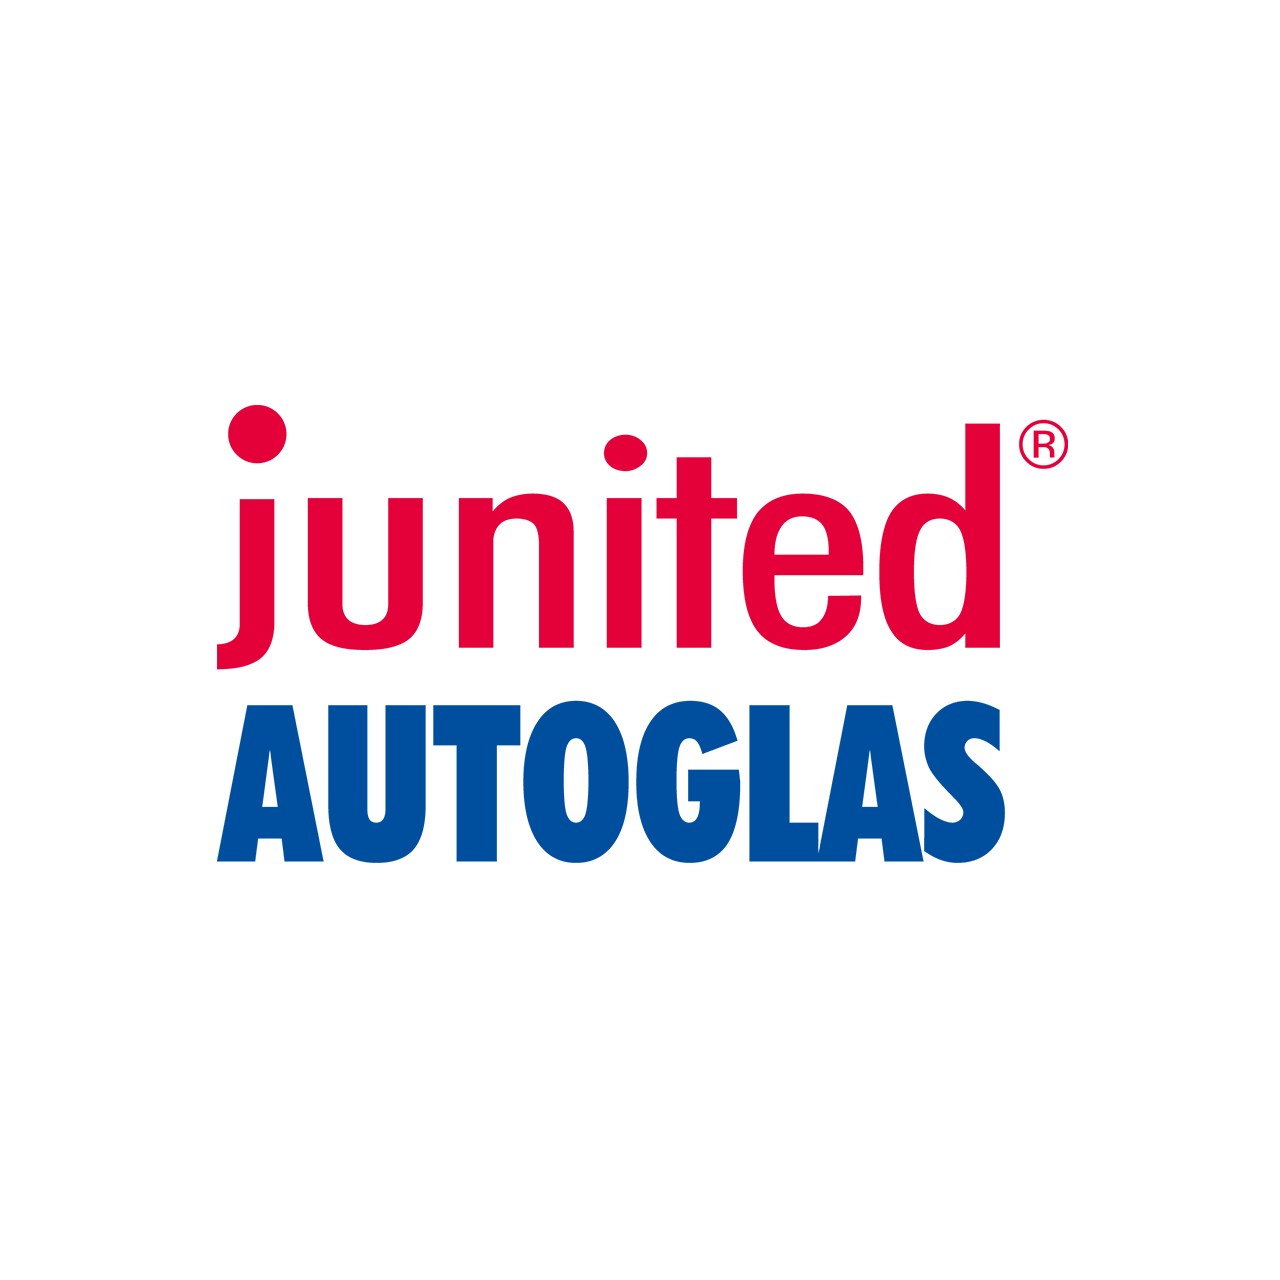 Developing a franchise system: junited autoglas